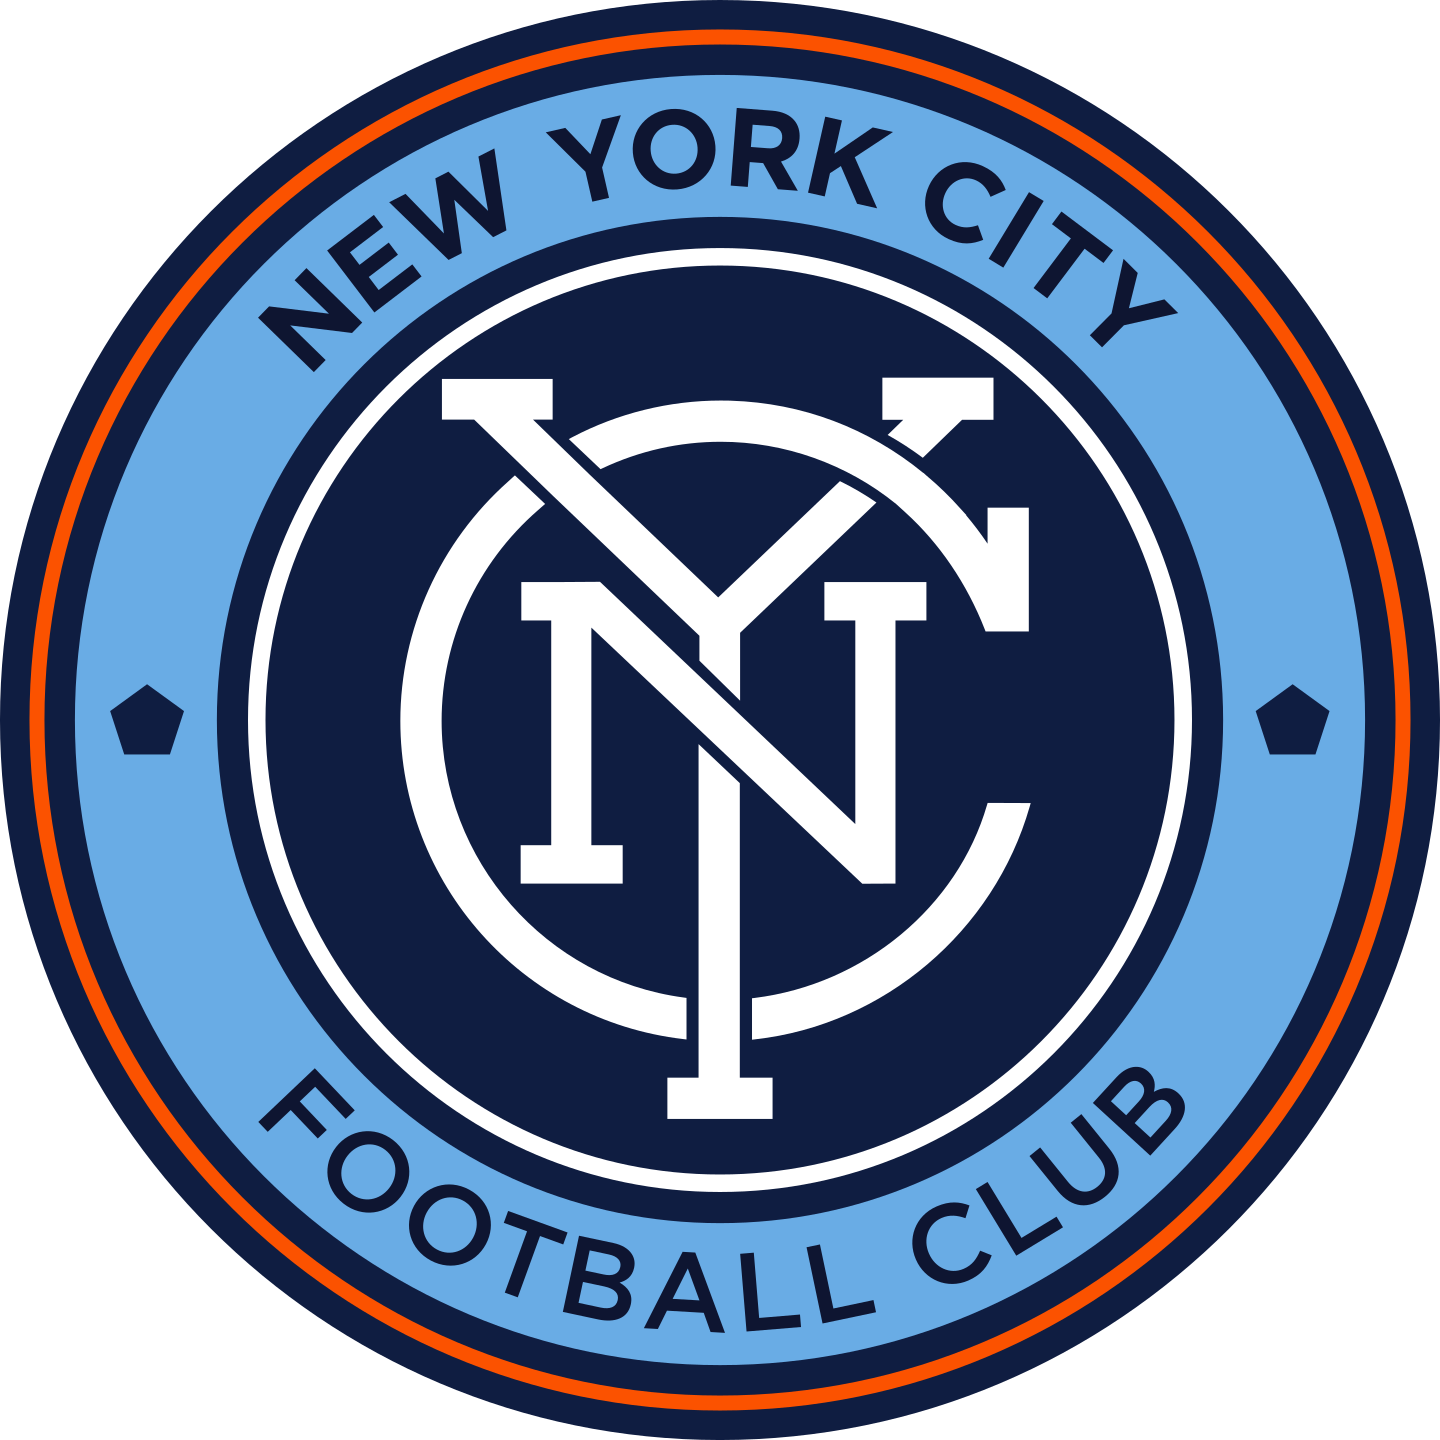 new york city fc logo 2 - New York City FC Logo